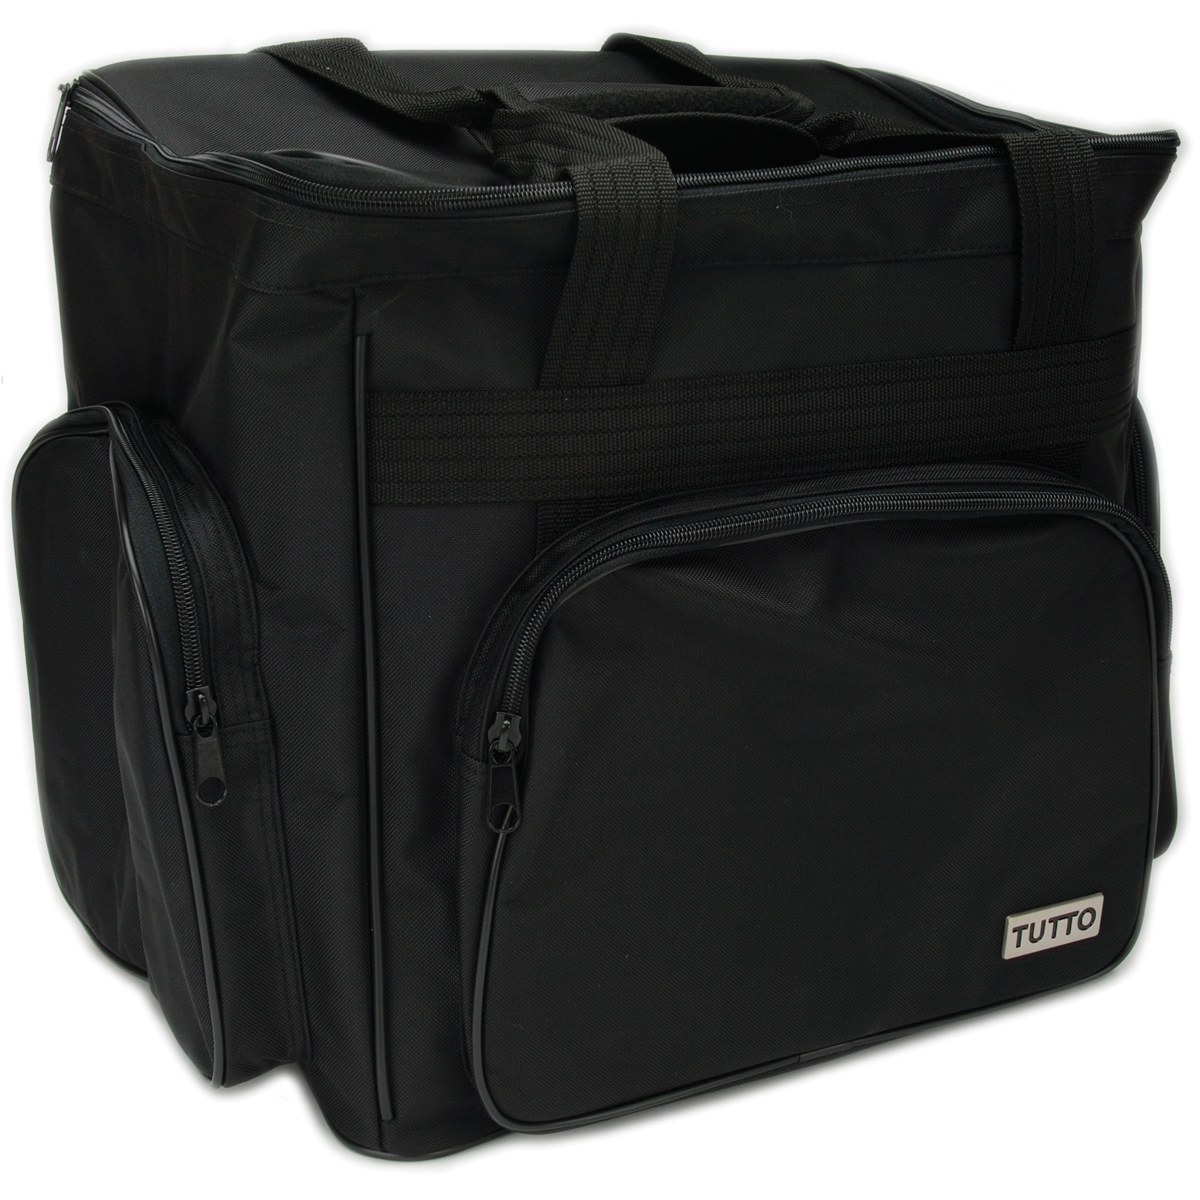 "Tutto Serger & Accessory Bag-14.5""X14.5"" Black"